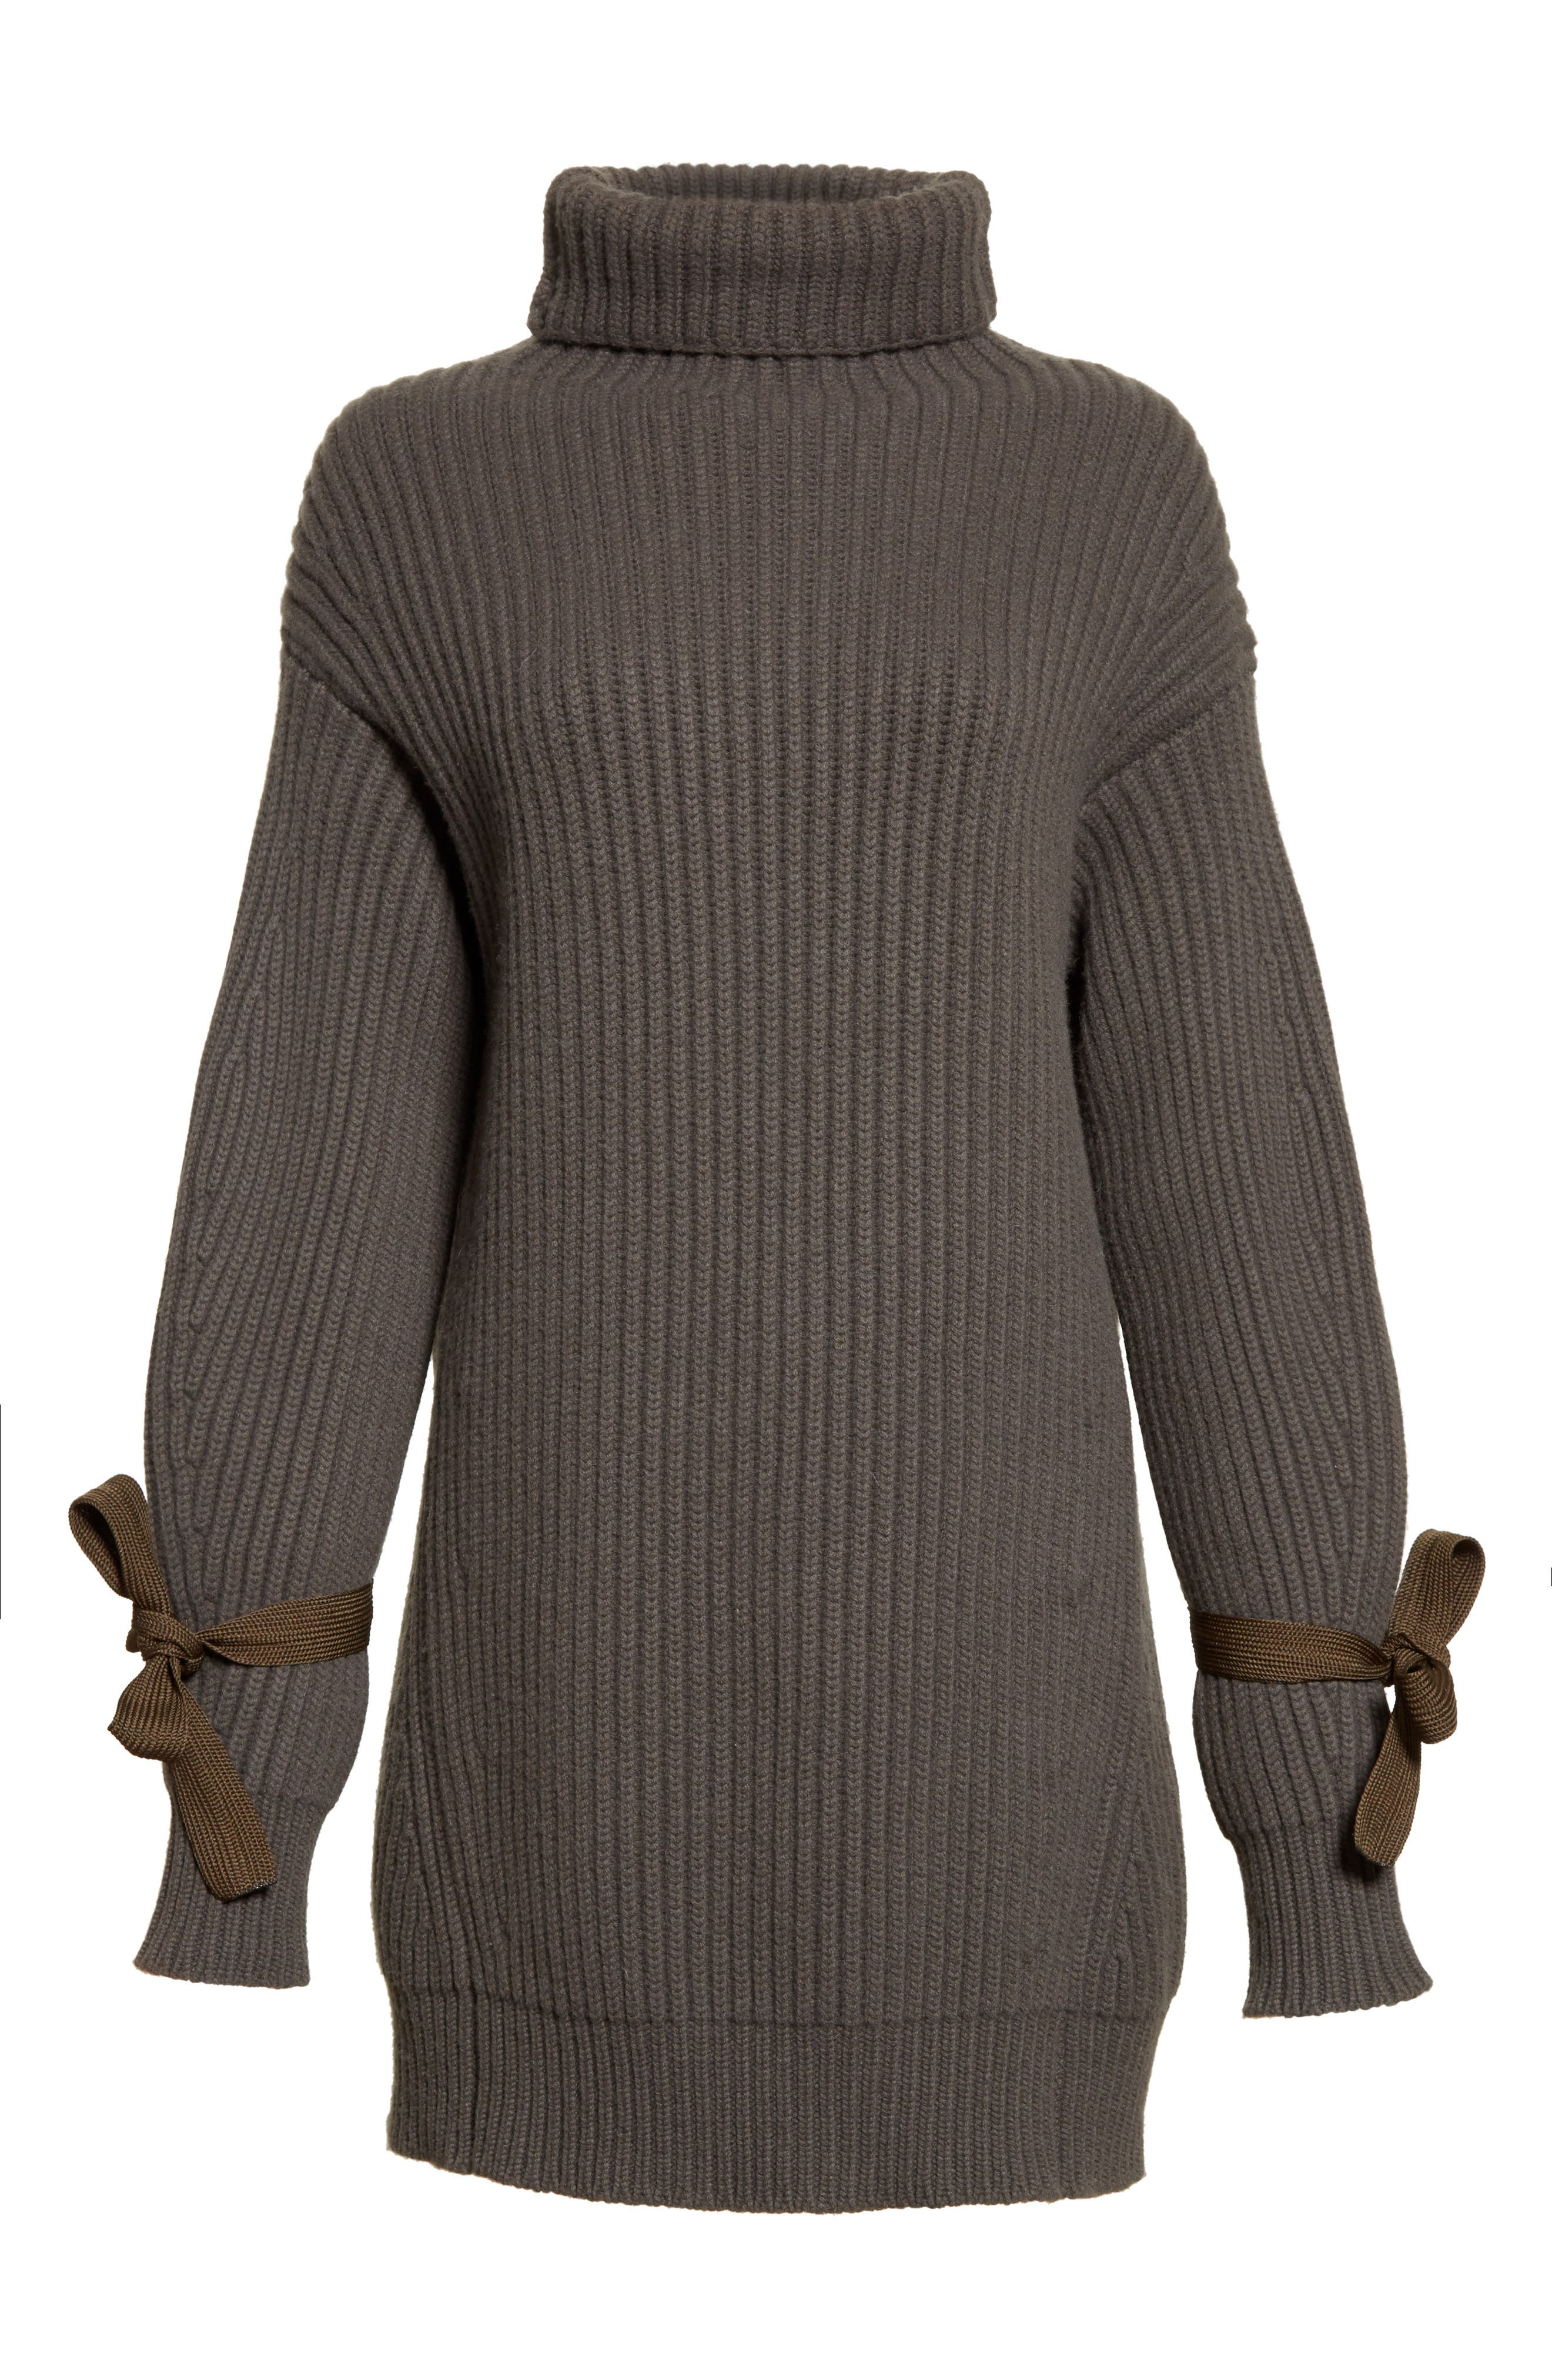 Ciclista Wool & Cashmere Sweater,                             Alternate thumbnail 4, color,                             Olive